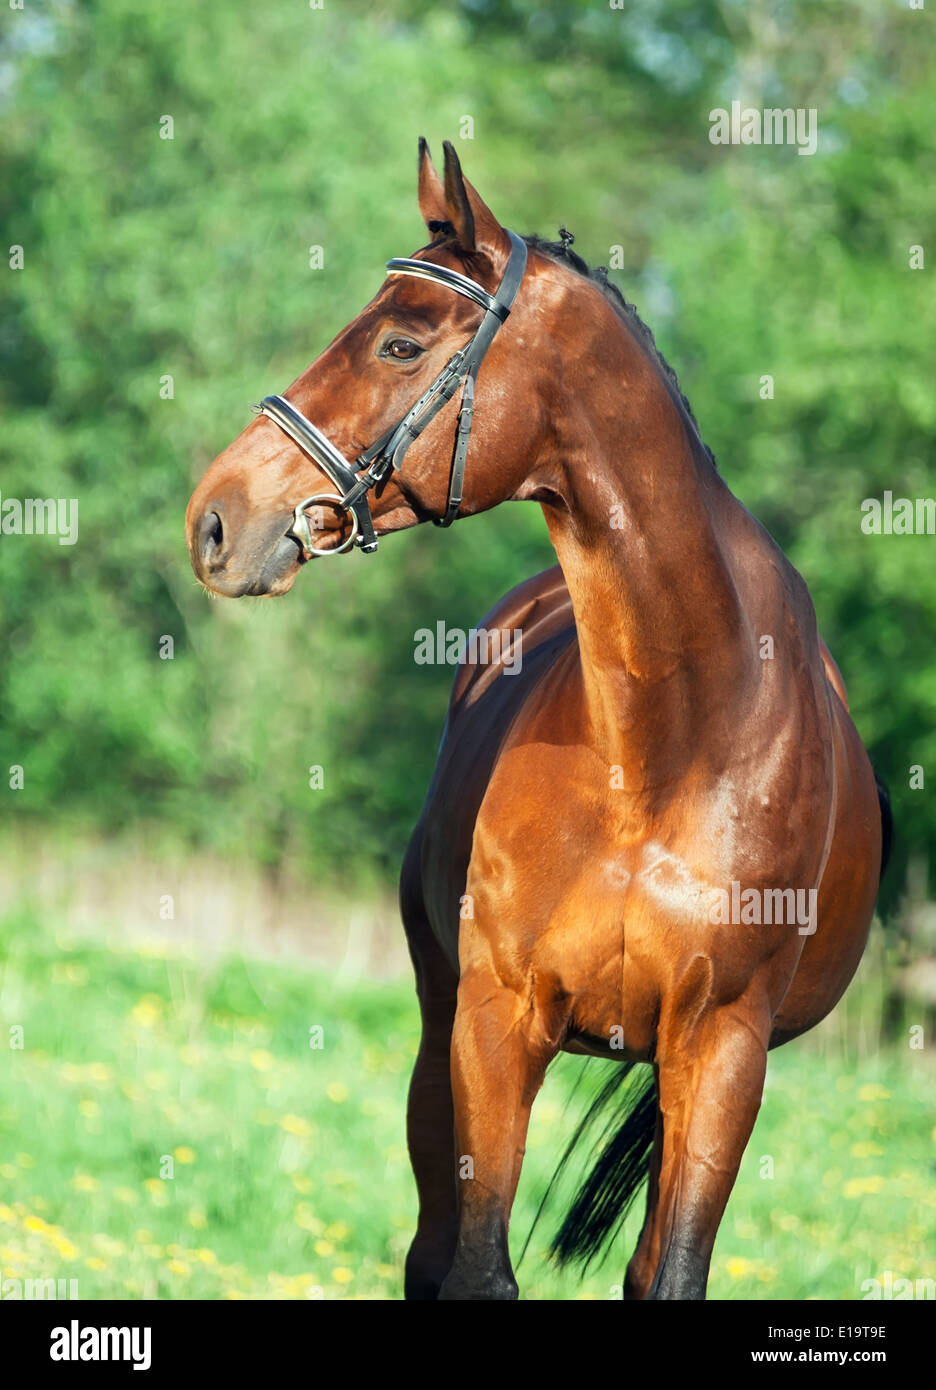 portrait of bay sportive horse - Stock Image